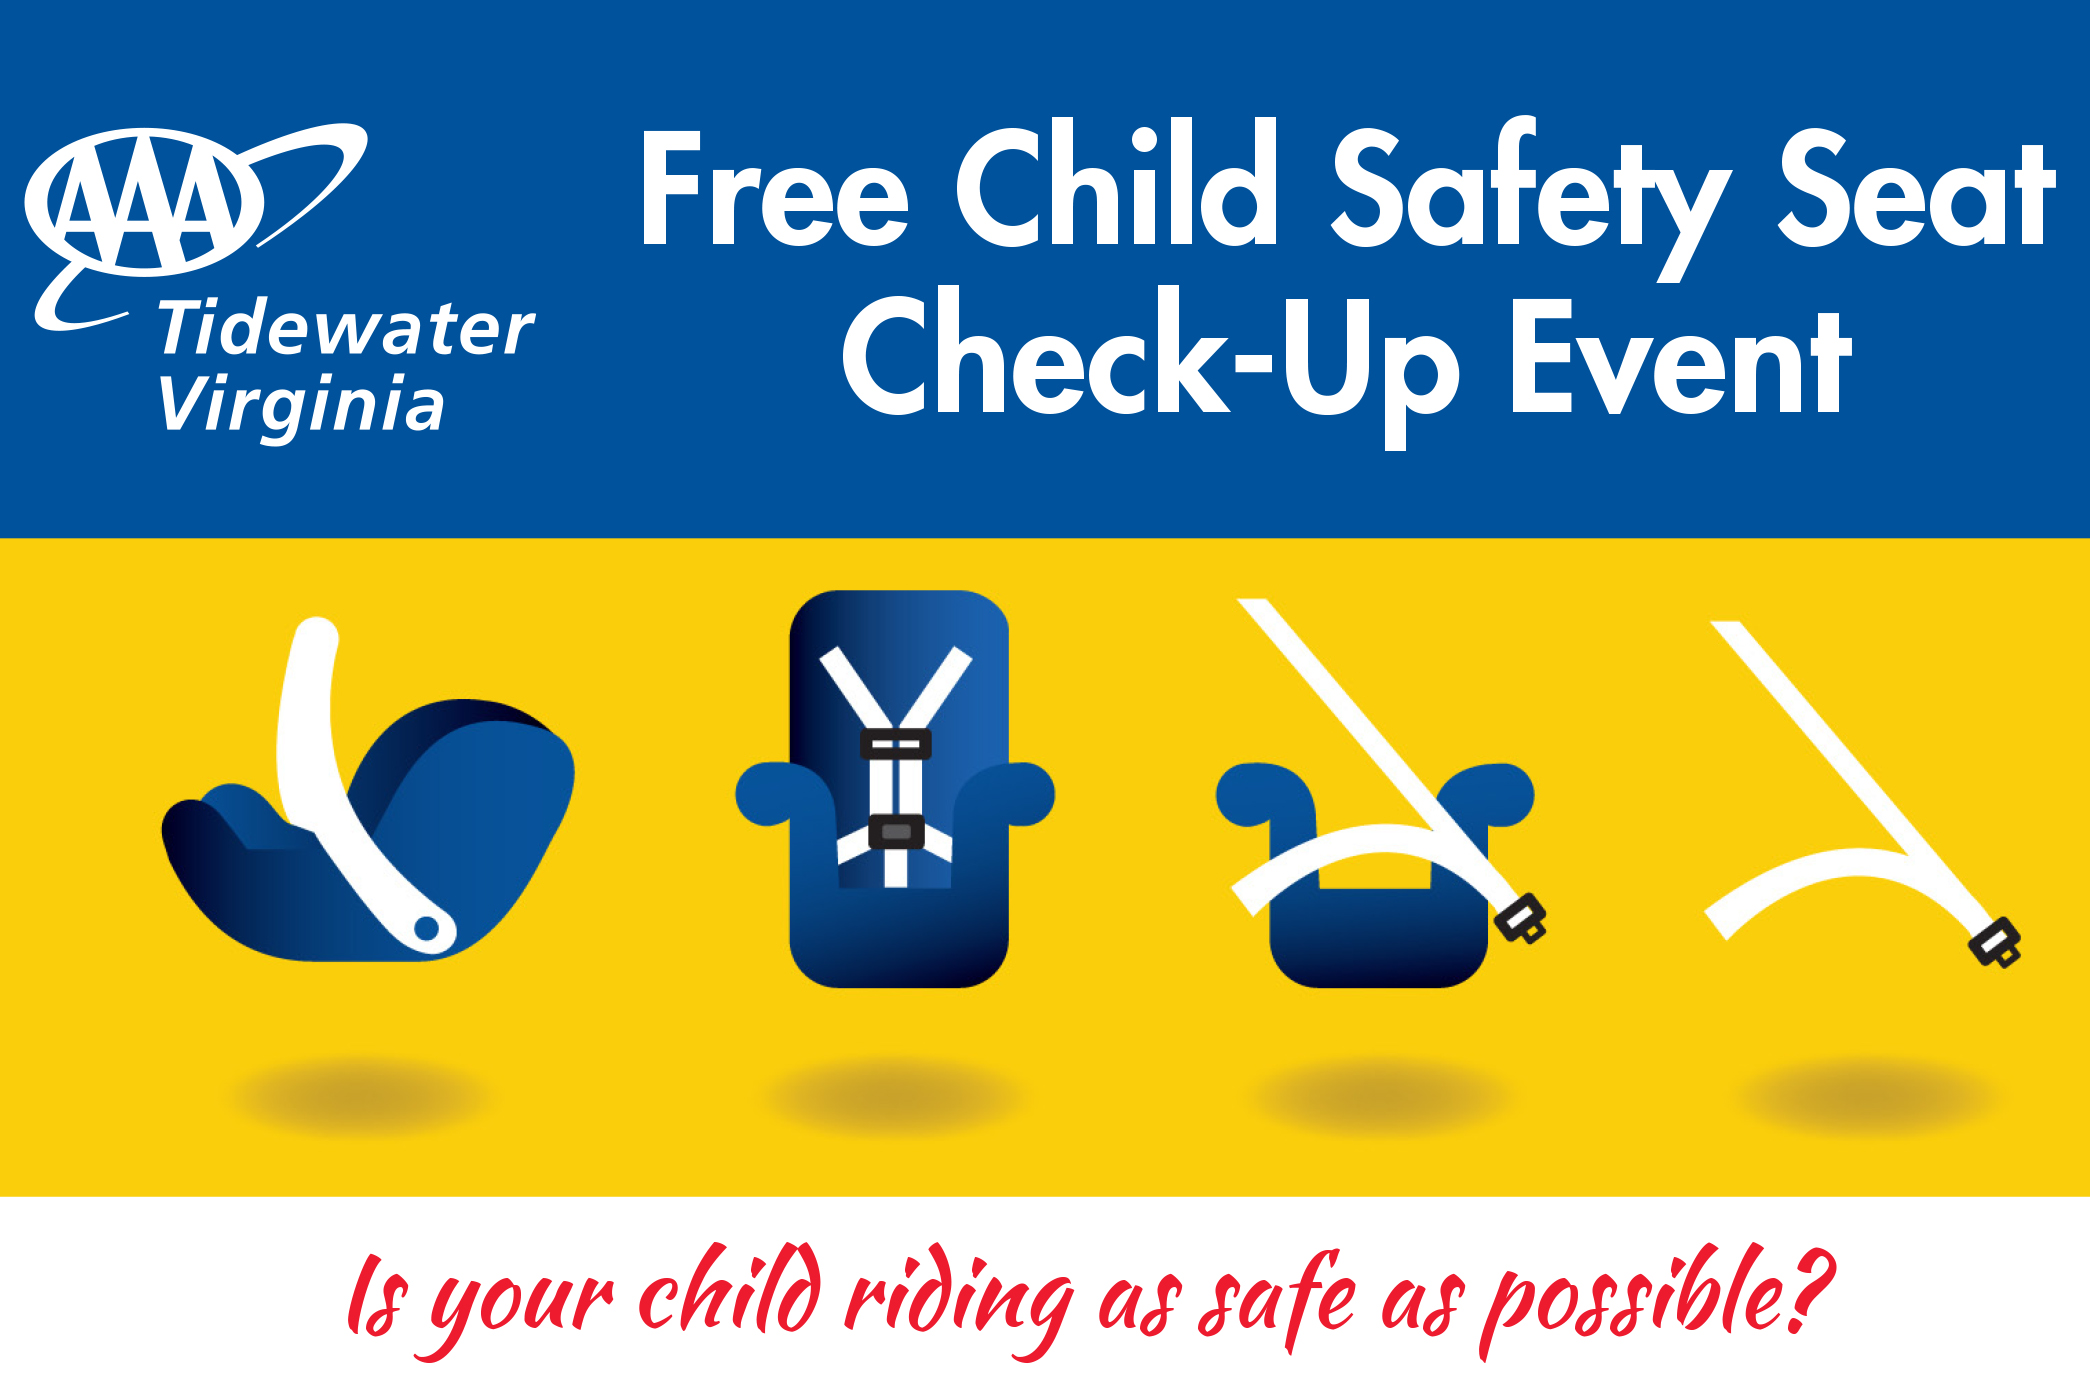 AAA Tidewater Virginia offers free safety-seat inspections Sept. 23 by nationally certified child passenger safety technicians.